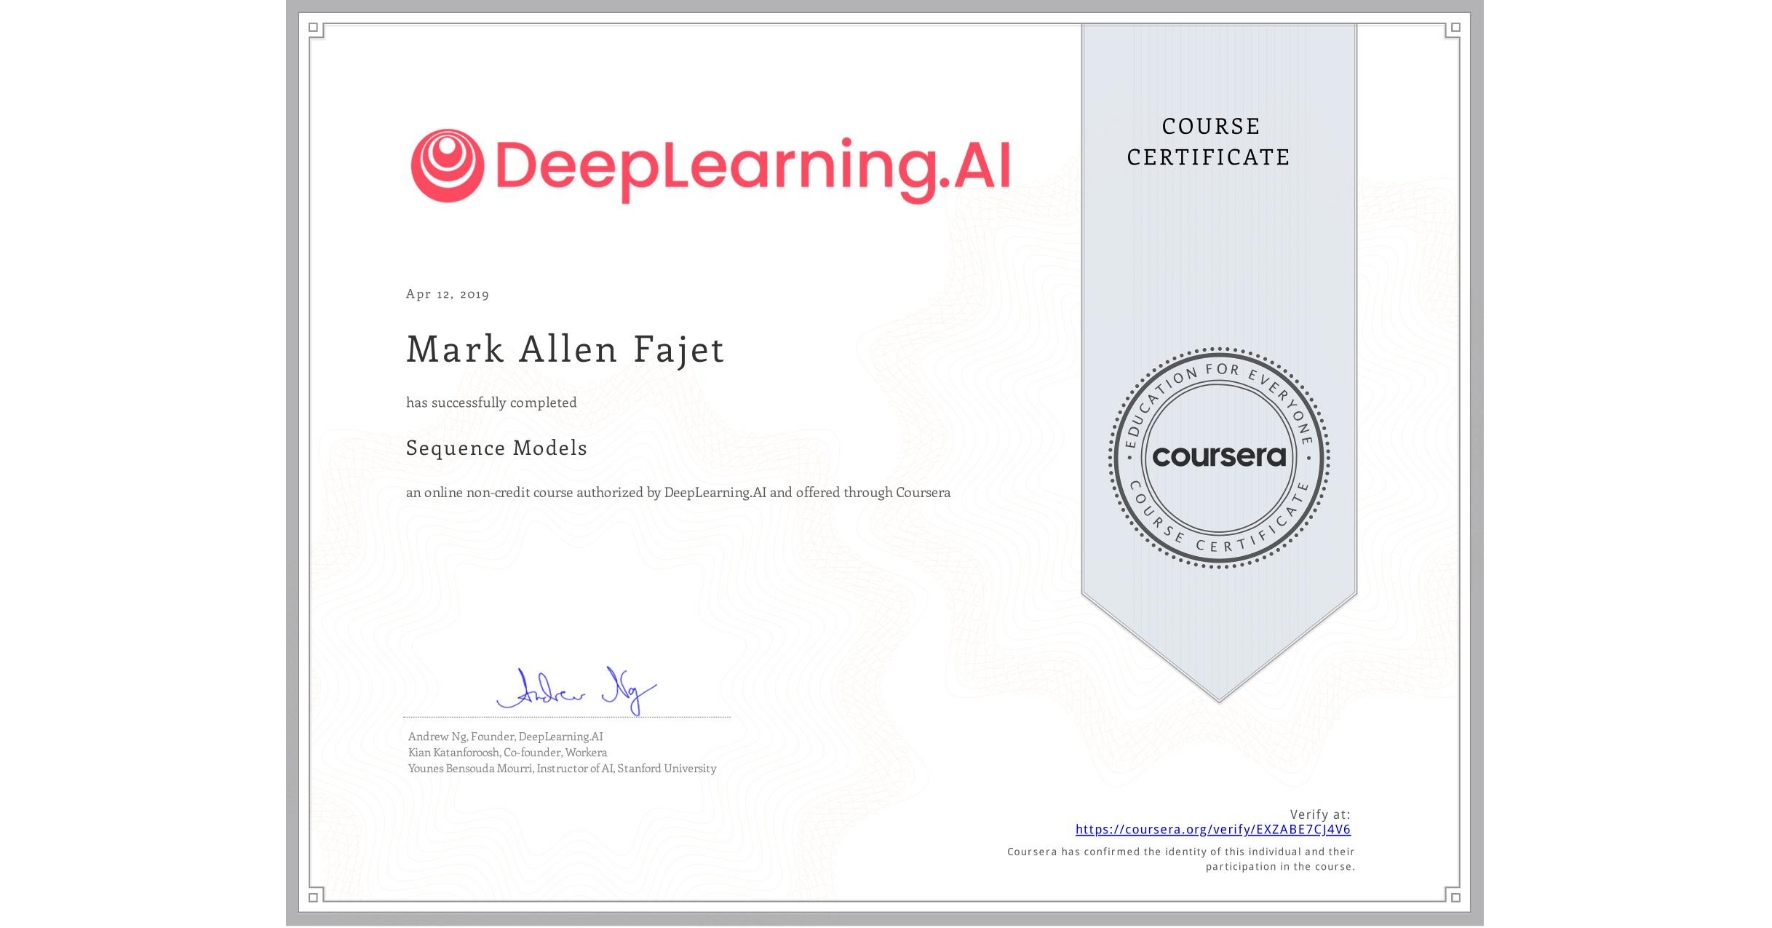 View certificate for Mark Allen Fajet, Sequence Models, an online non-credit course authorized by DeepLearning.AI and offered through Coursera